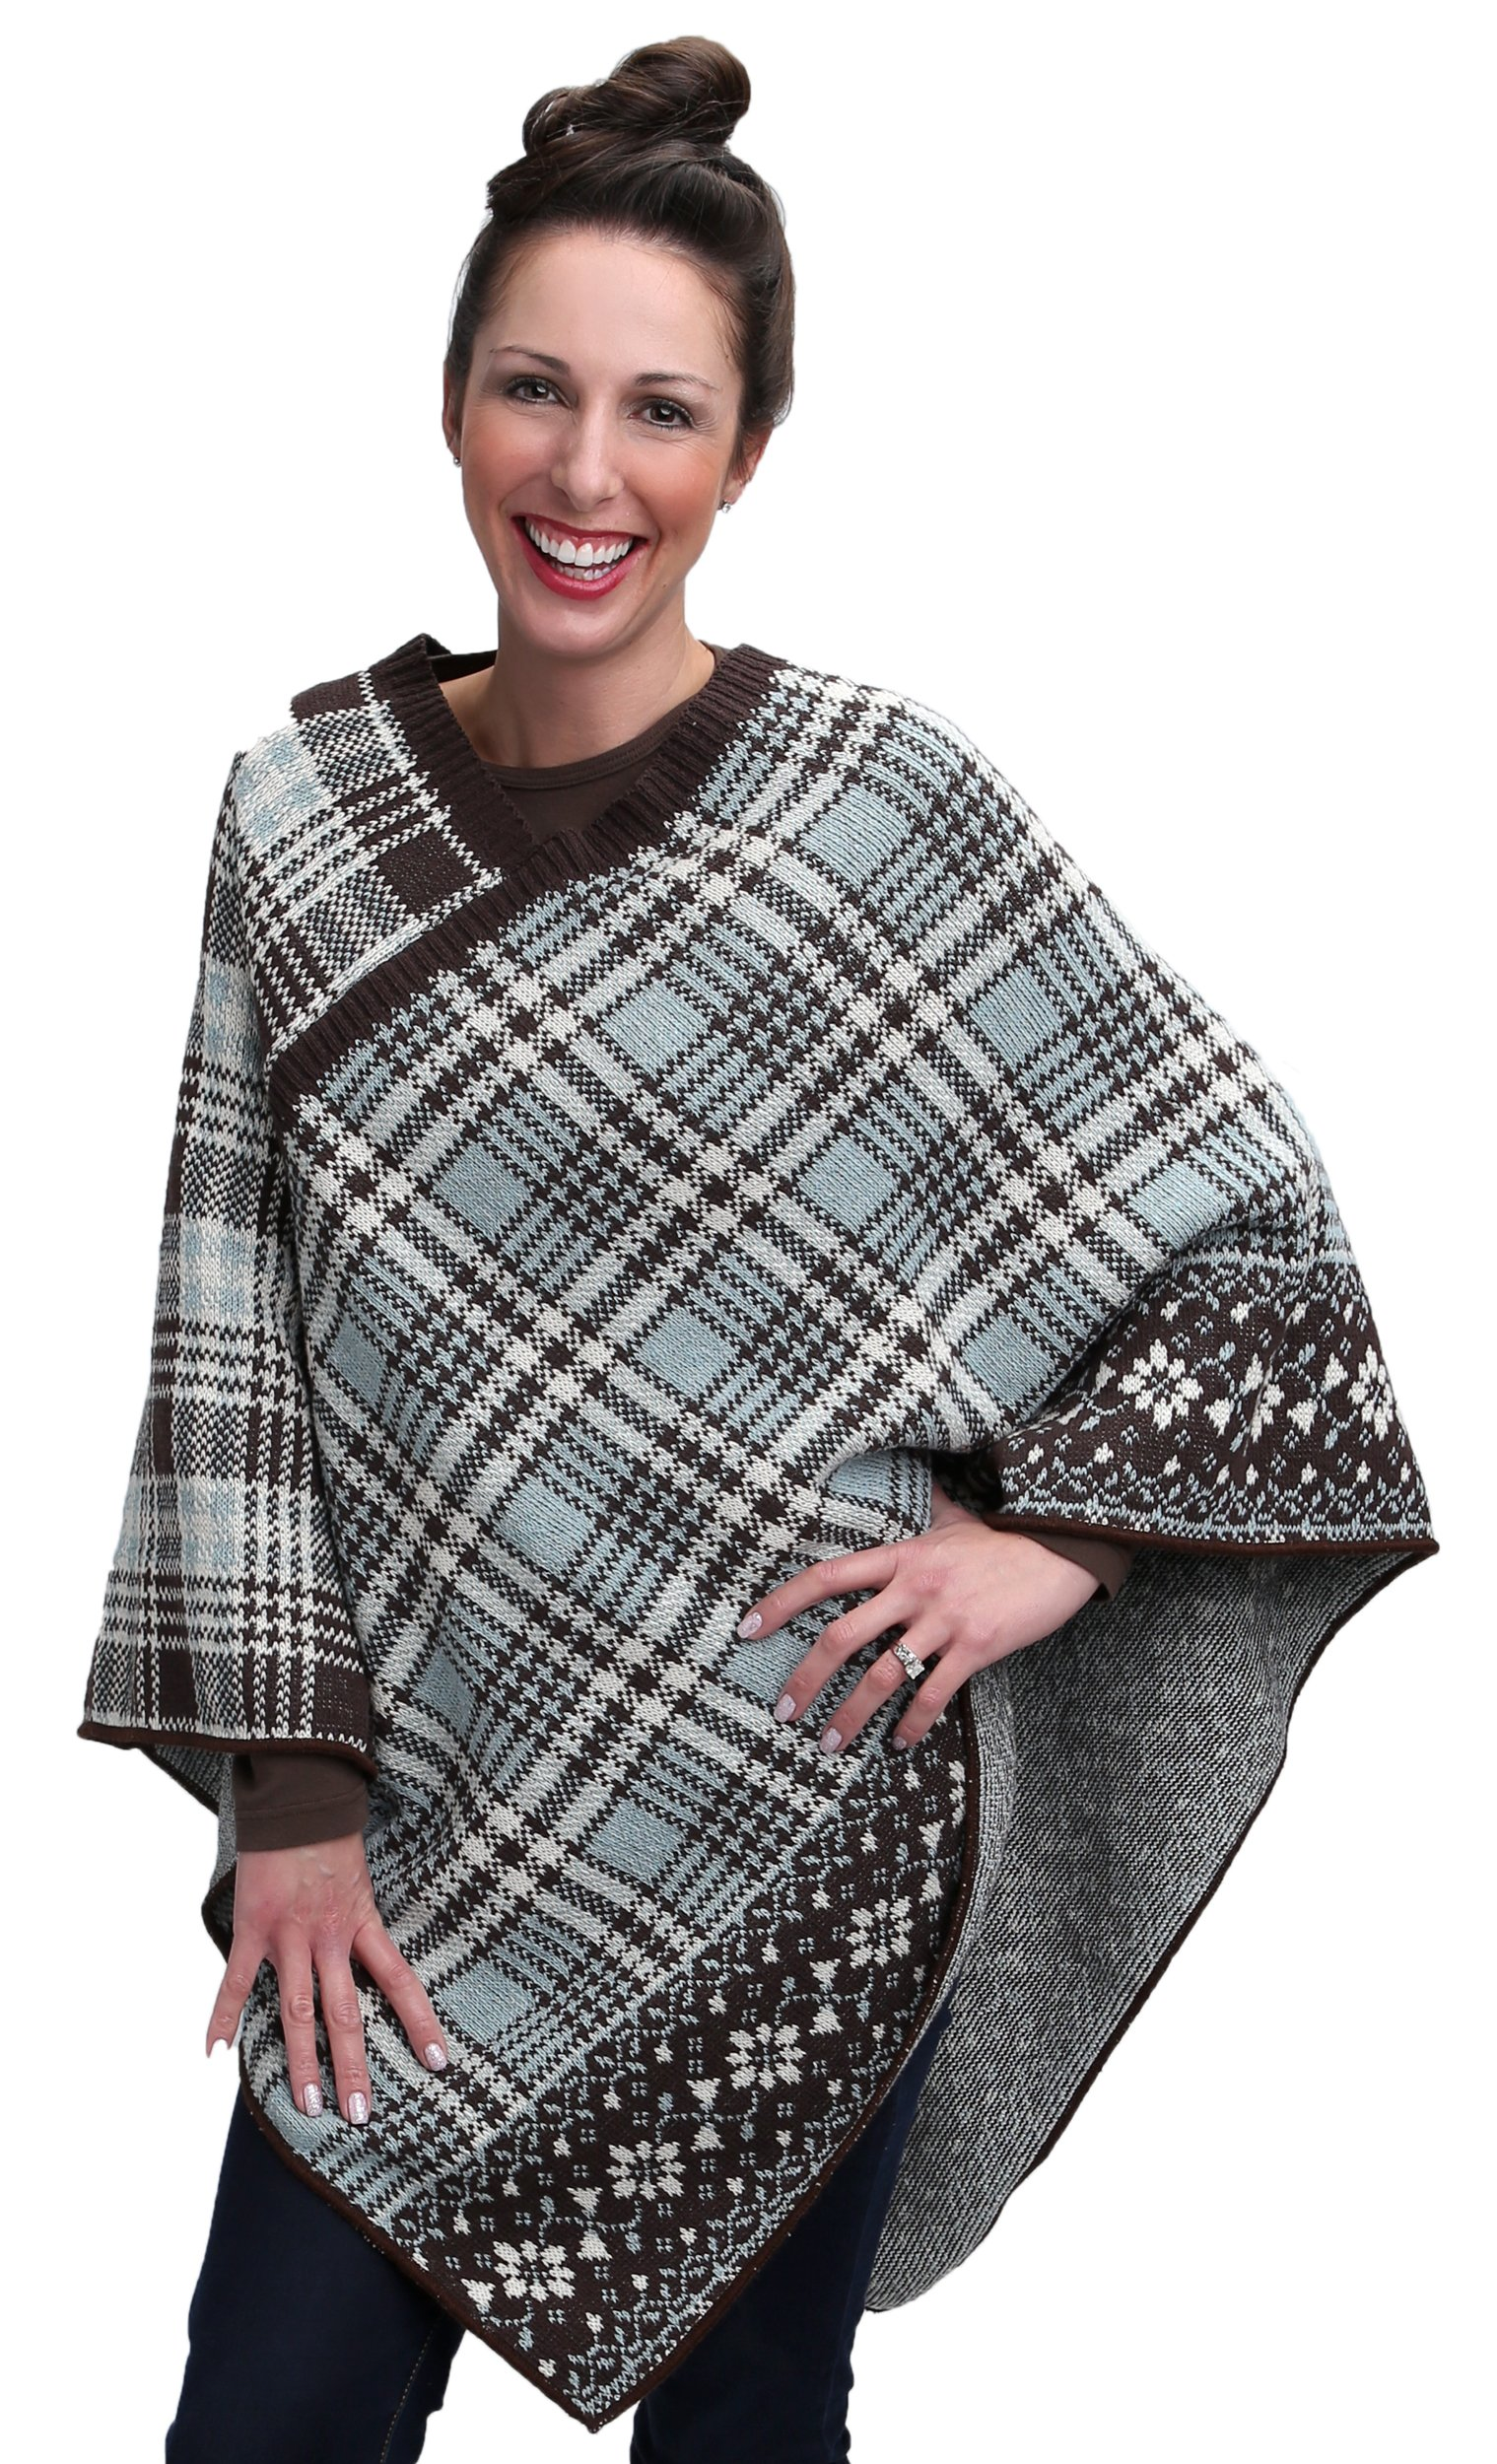 Green 3 Cable Knit Poncho (Chocolate Brown/Light Turquoise Vintage Plaid) - Womens Recycled Cotton Sweater Knit Wrap, Made in The USA (One Size)